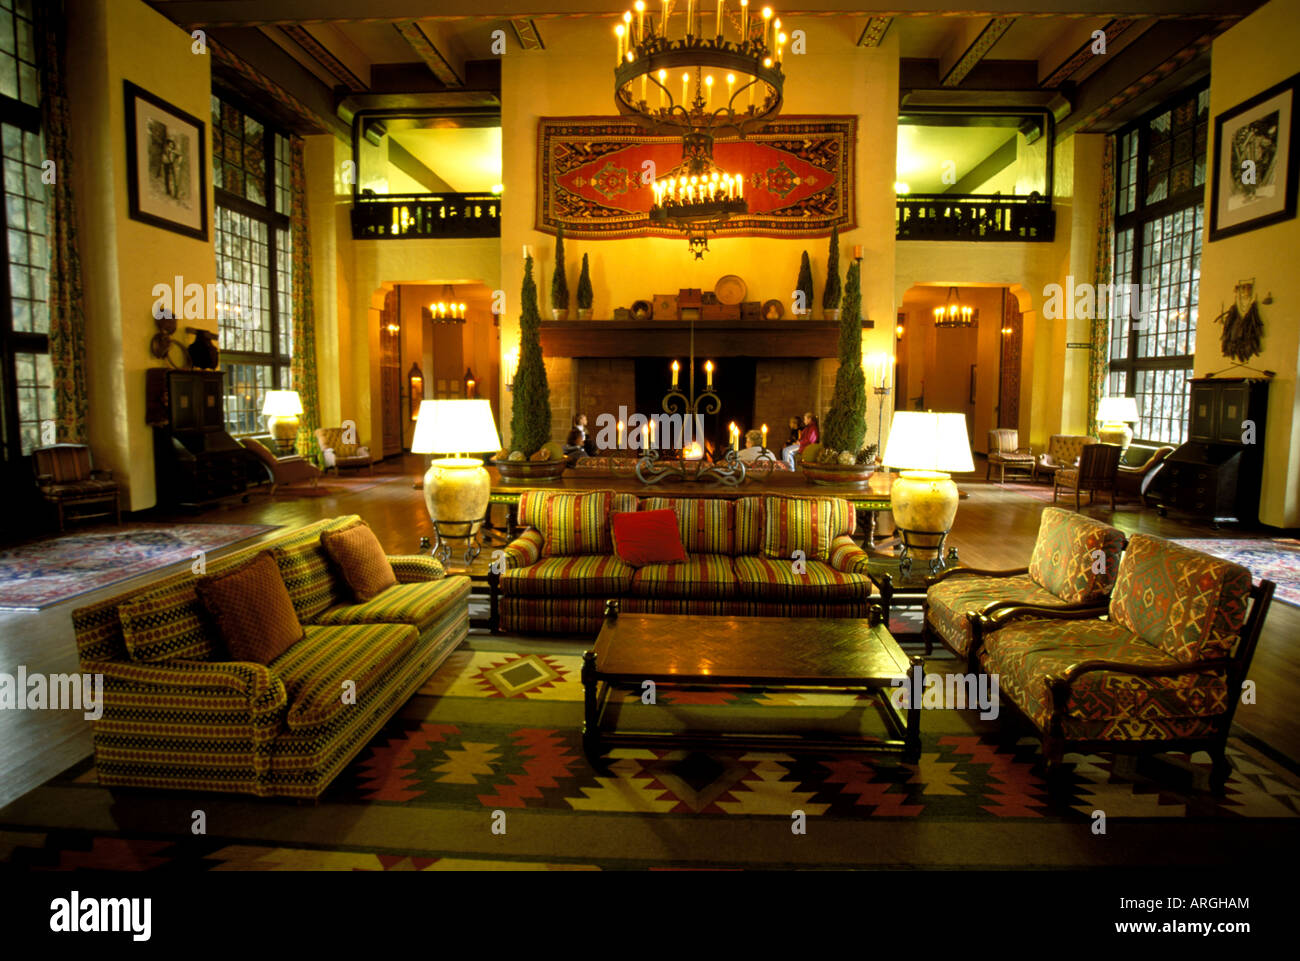 Native American motifs are used to decorate the Great Lounge in the ...